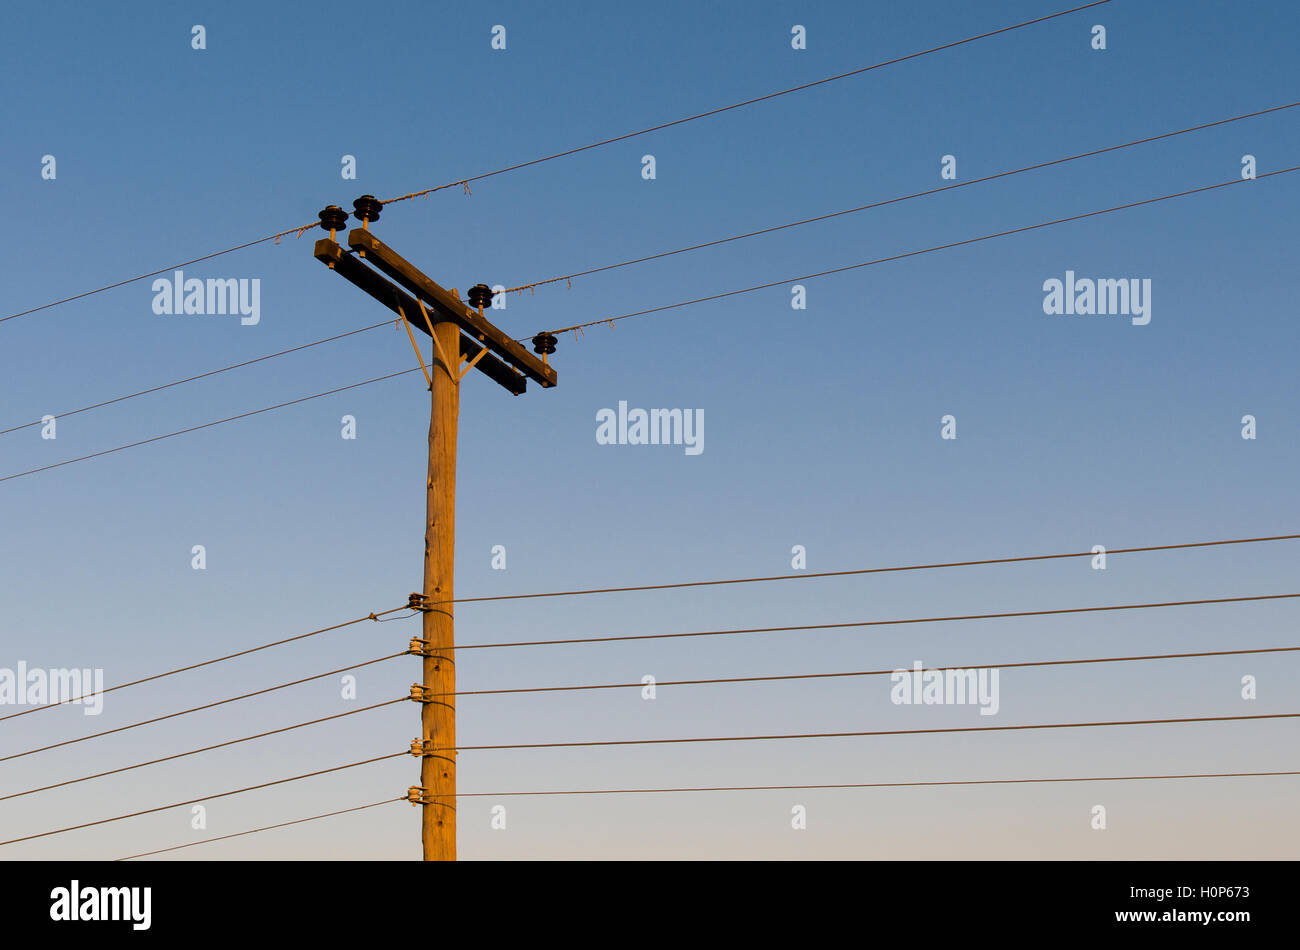 old wooden electric pole stockfotos old wooden electric pole bilder alamy. Black Bedroom Furniture Sets. Home Design Ideas